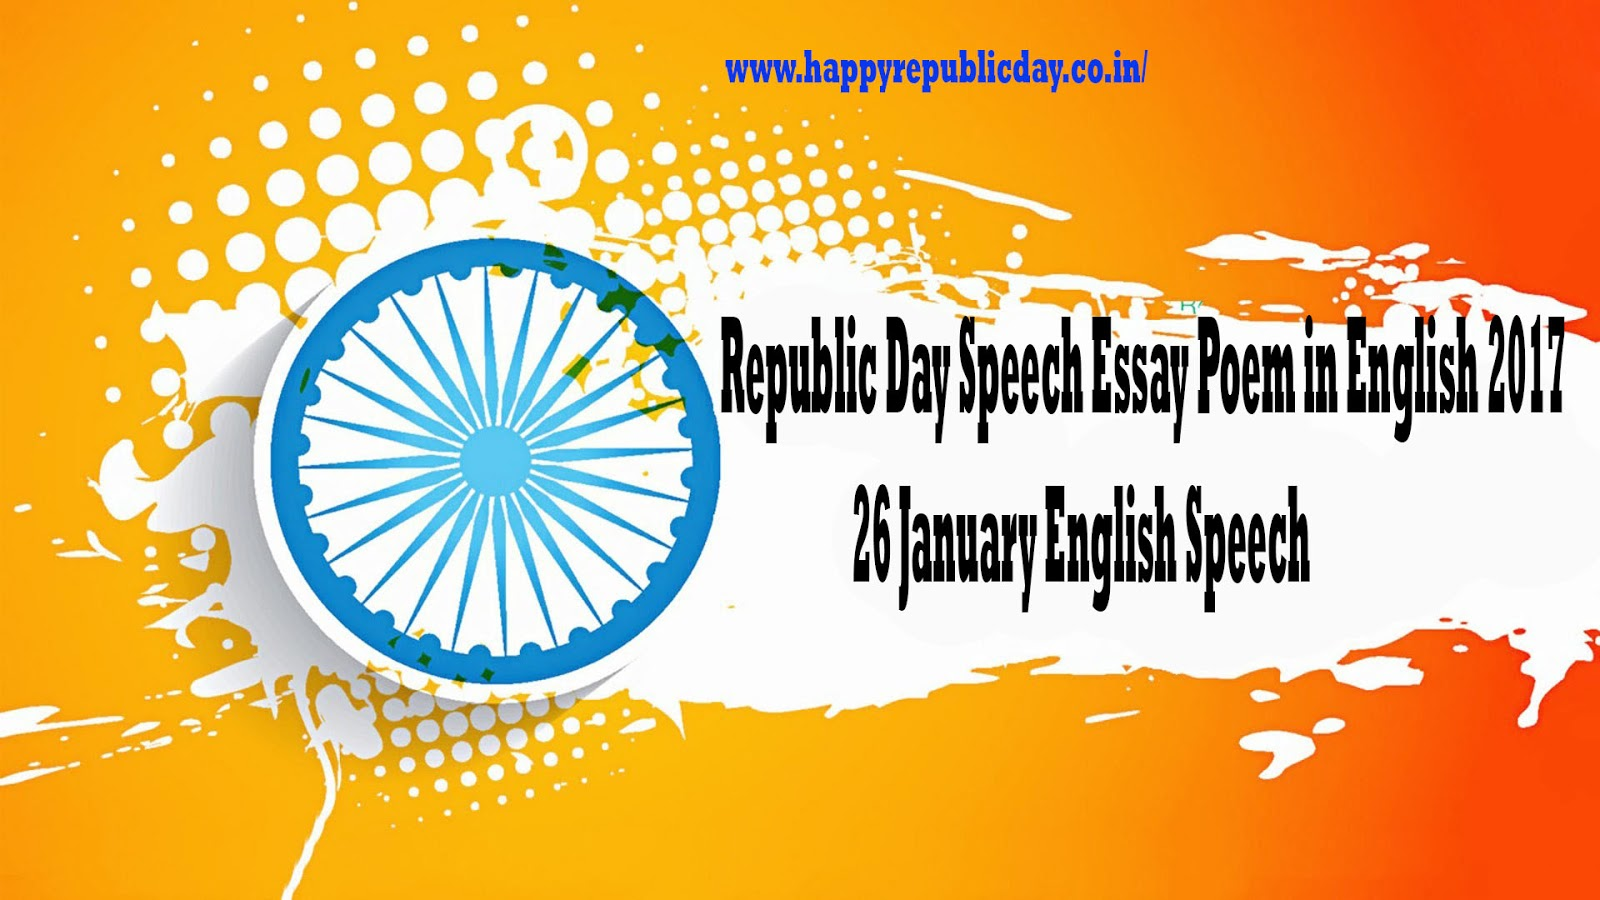 republic day speech essay poem in english 2017 26 republic day speech essay poem in english 2017 26 english speech